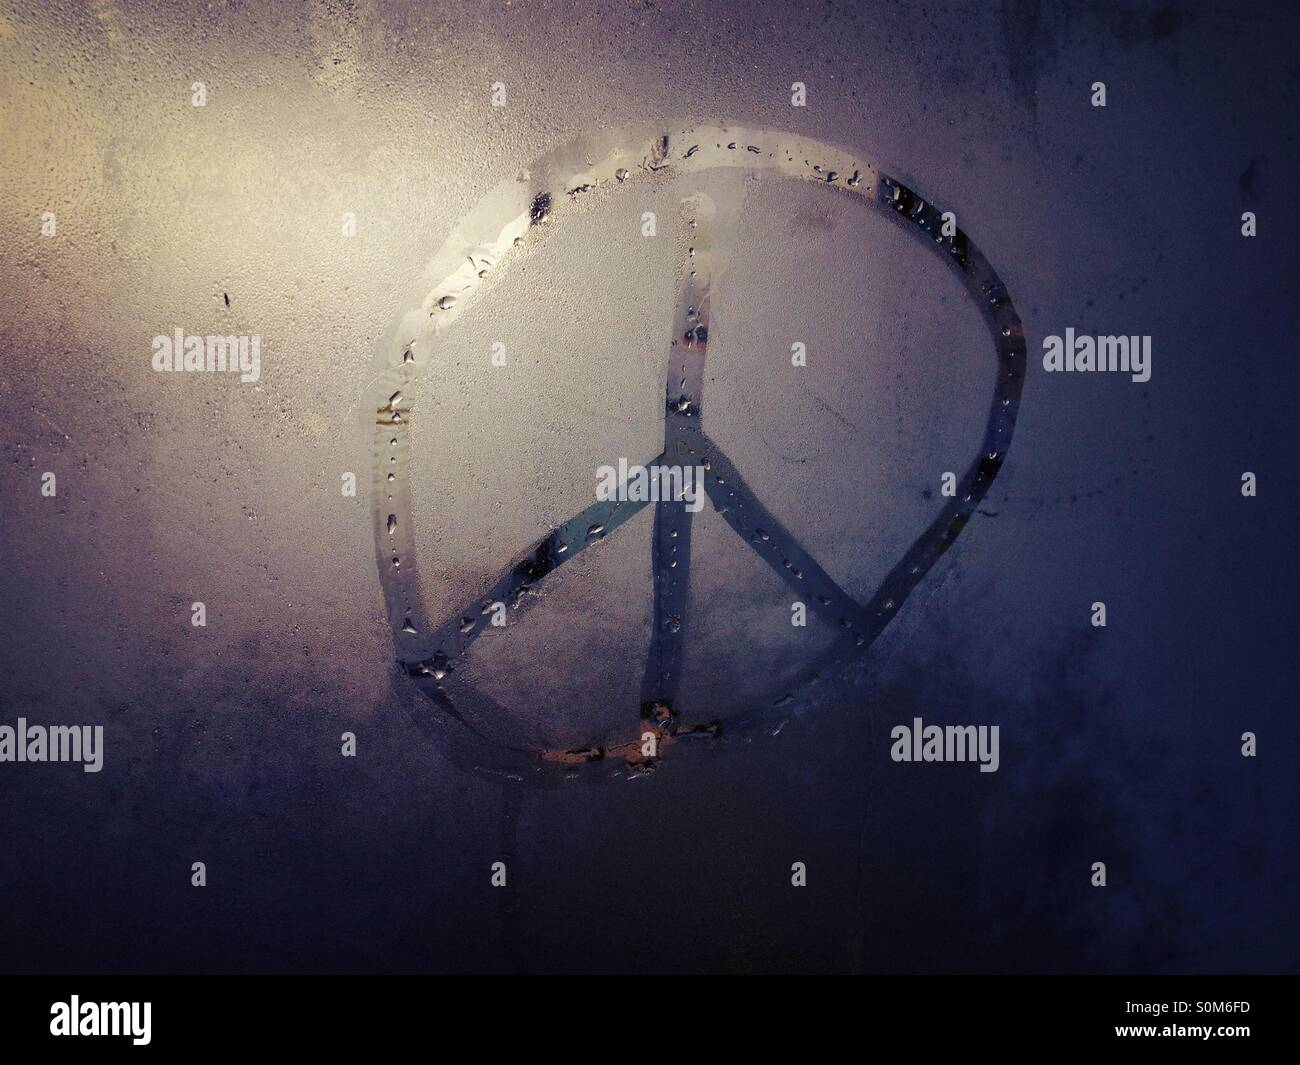 CND peace sign in glass condensation - Stock Image